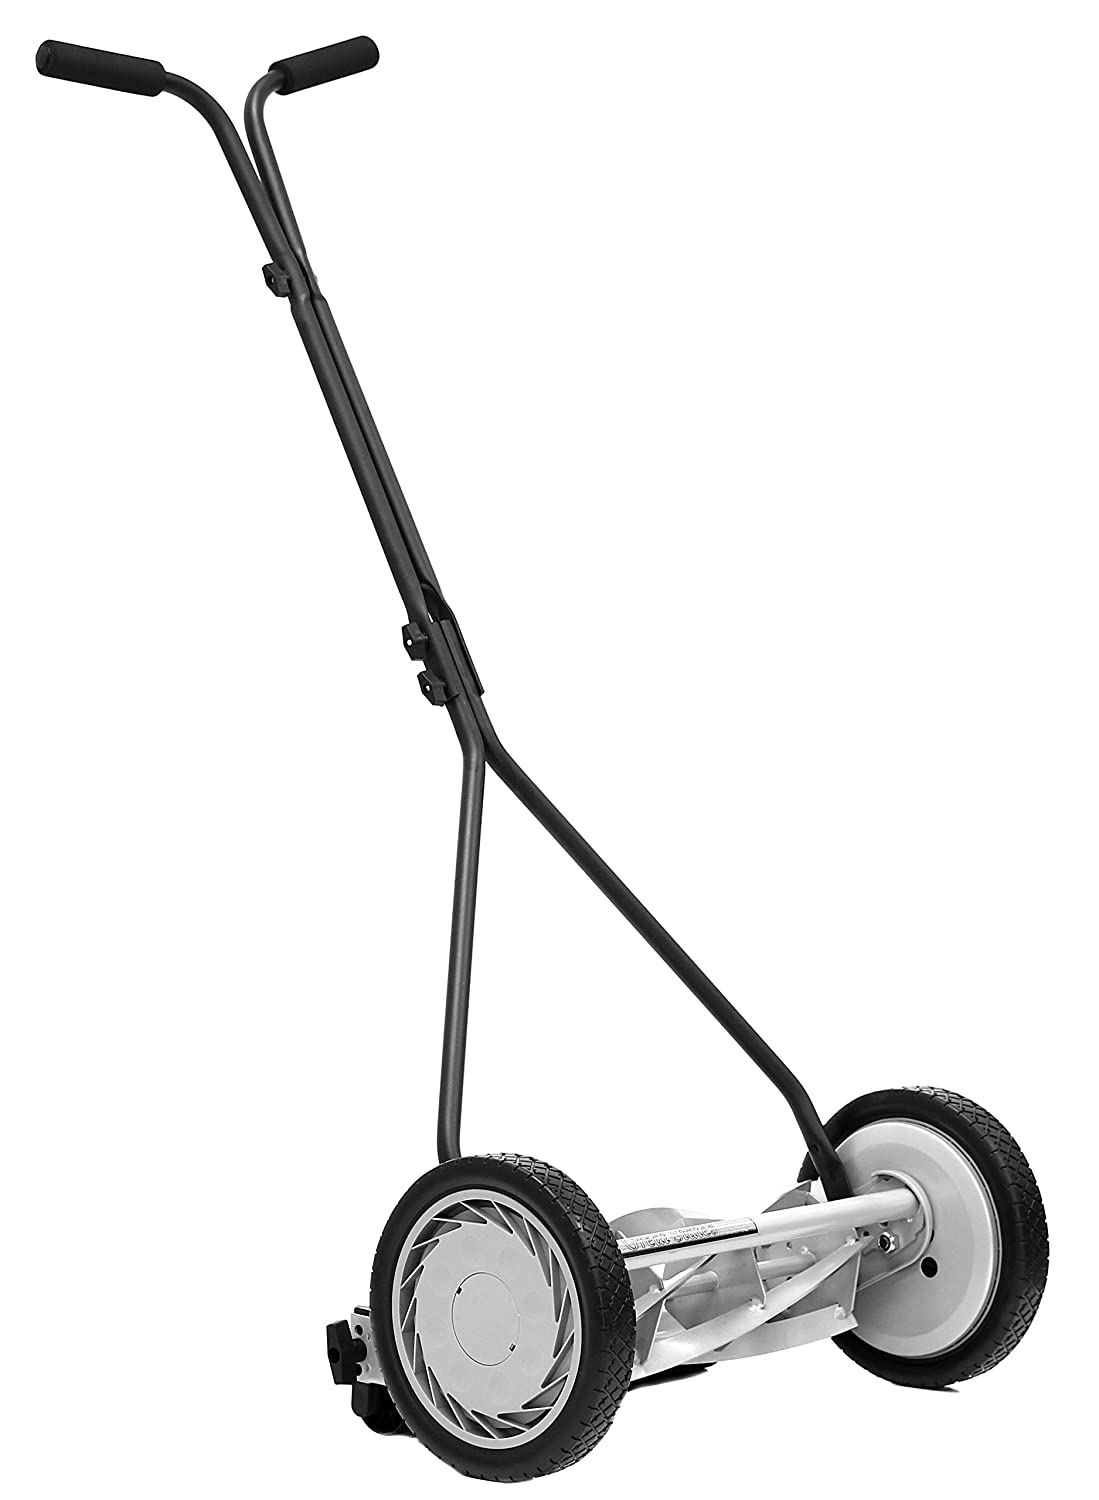 The Great States 415-16 Standard Full Feature Reel Lawn Mower